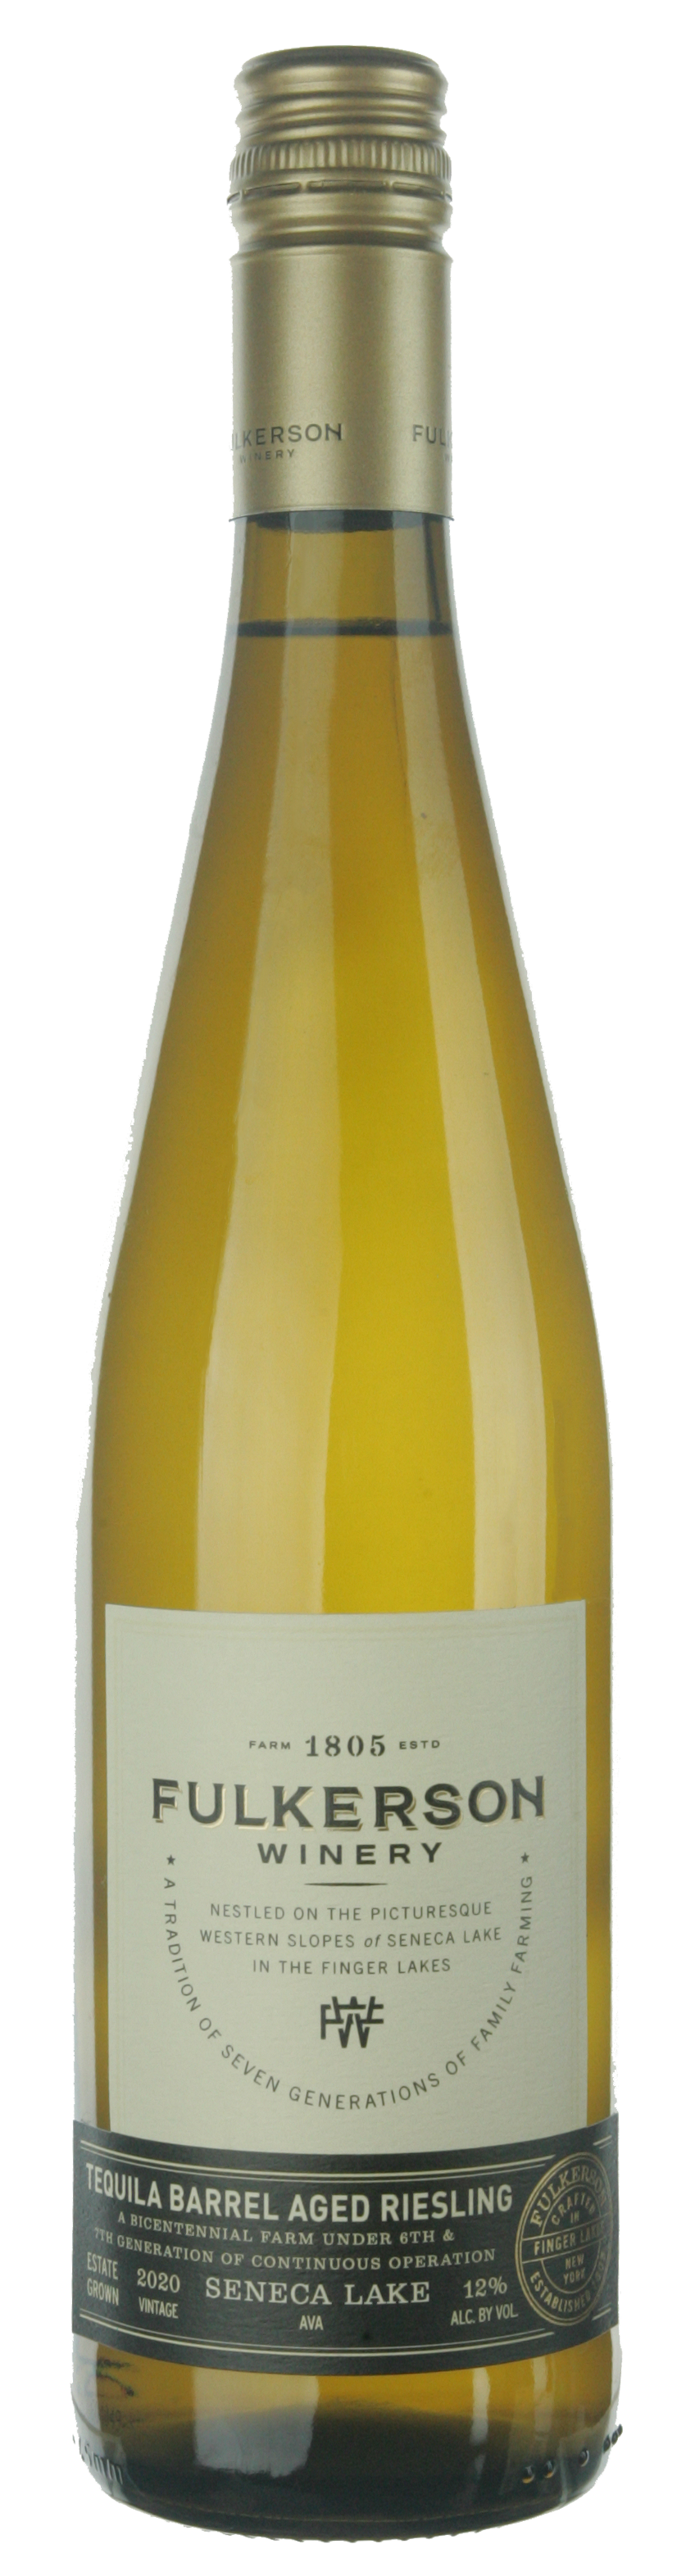 Tequila Barrel Riesling